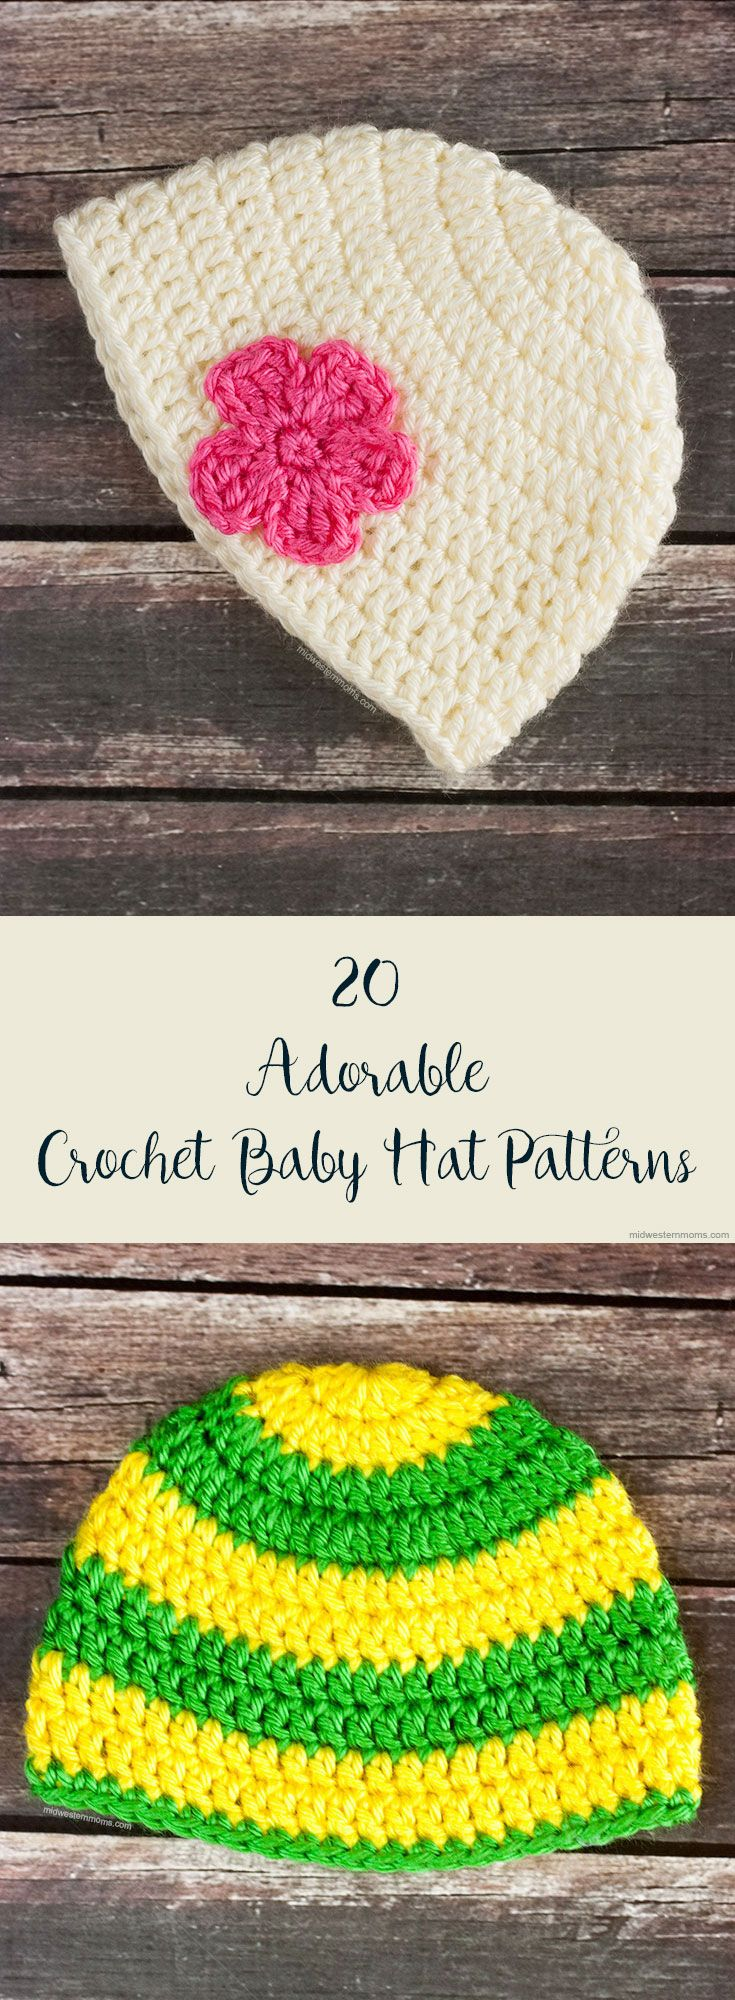 20+Adorable+(and+Free)+Crochet+Baby+Hat+Patterns